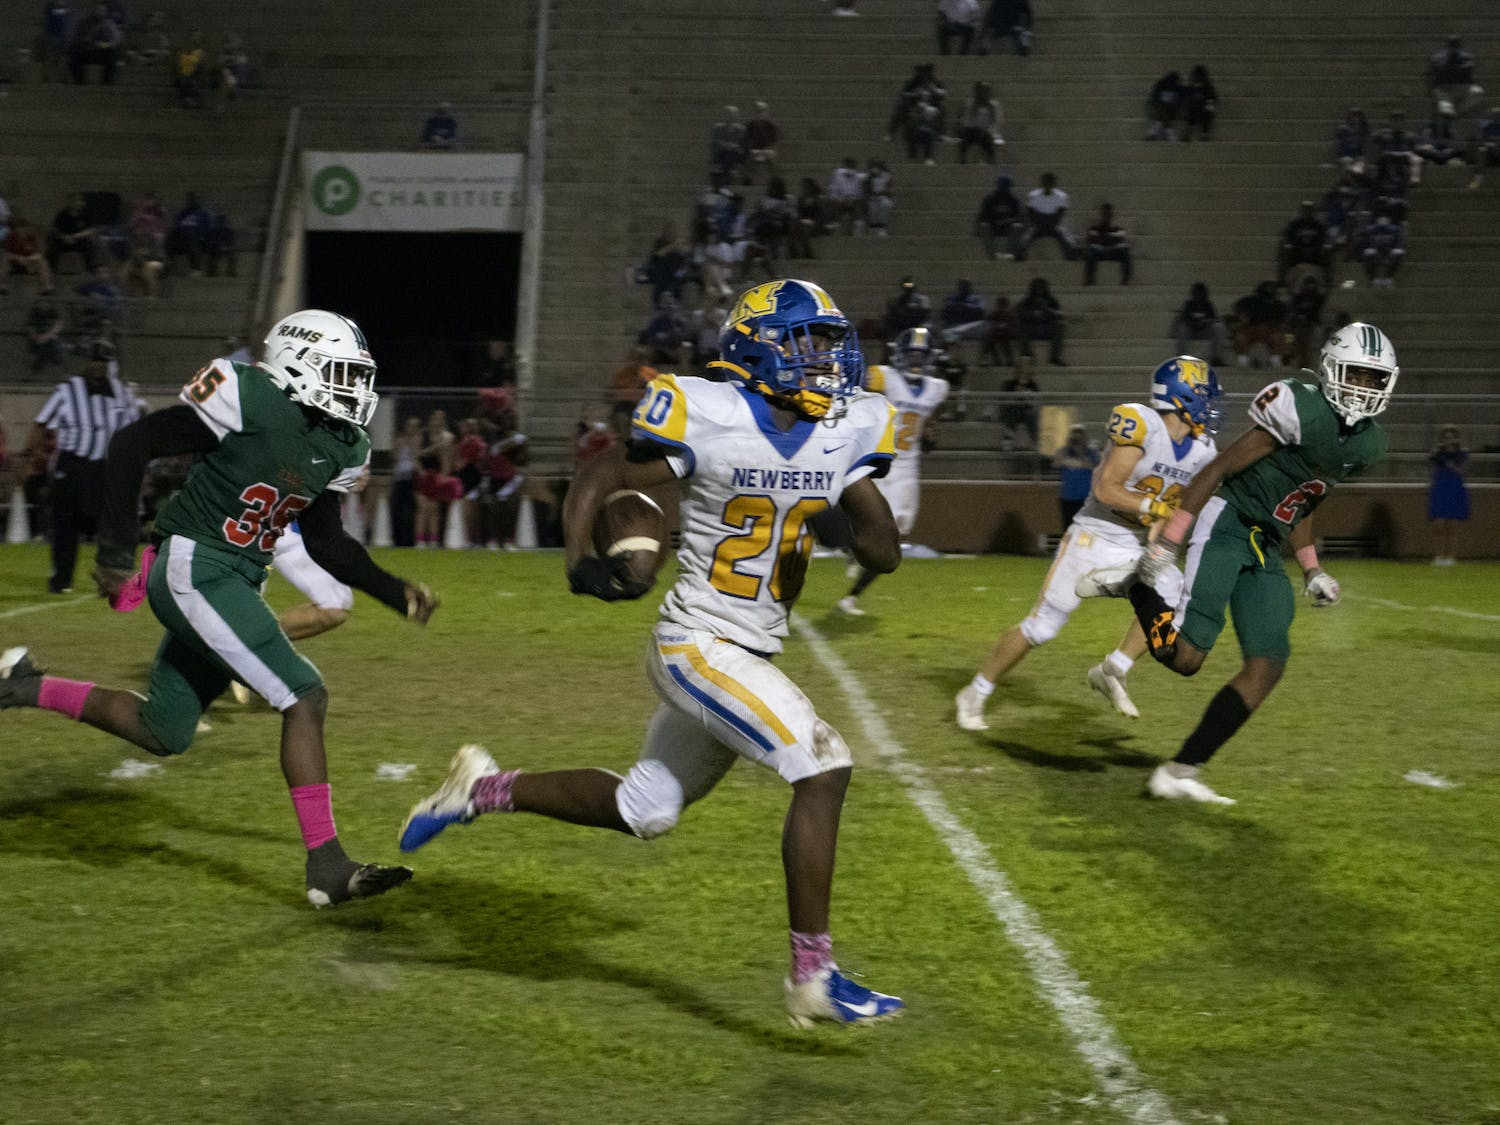 Keenon Johnson (middle), Newberry Panthers running back, runs the ball down Citizens Field during a game against the Eastside Rams on Thursday, Oct. 14, 2021.